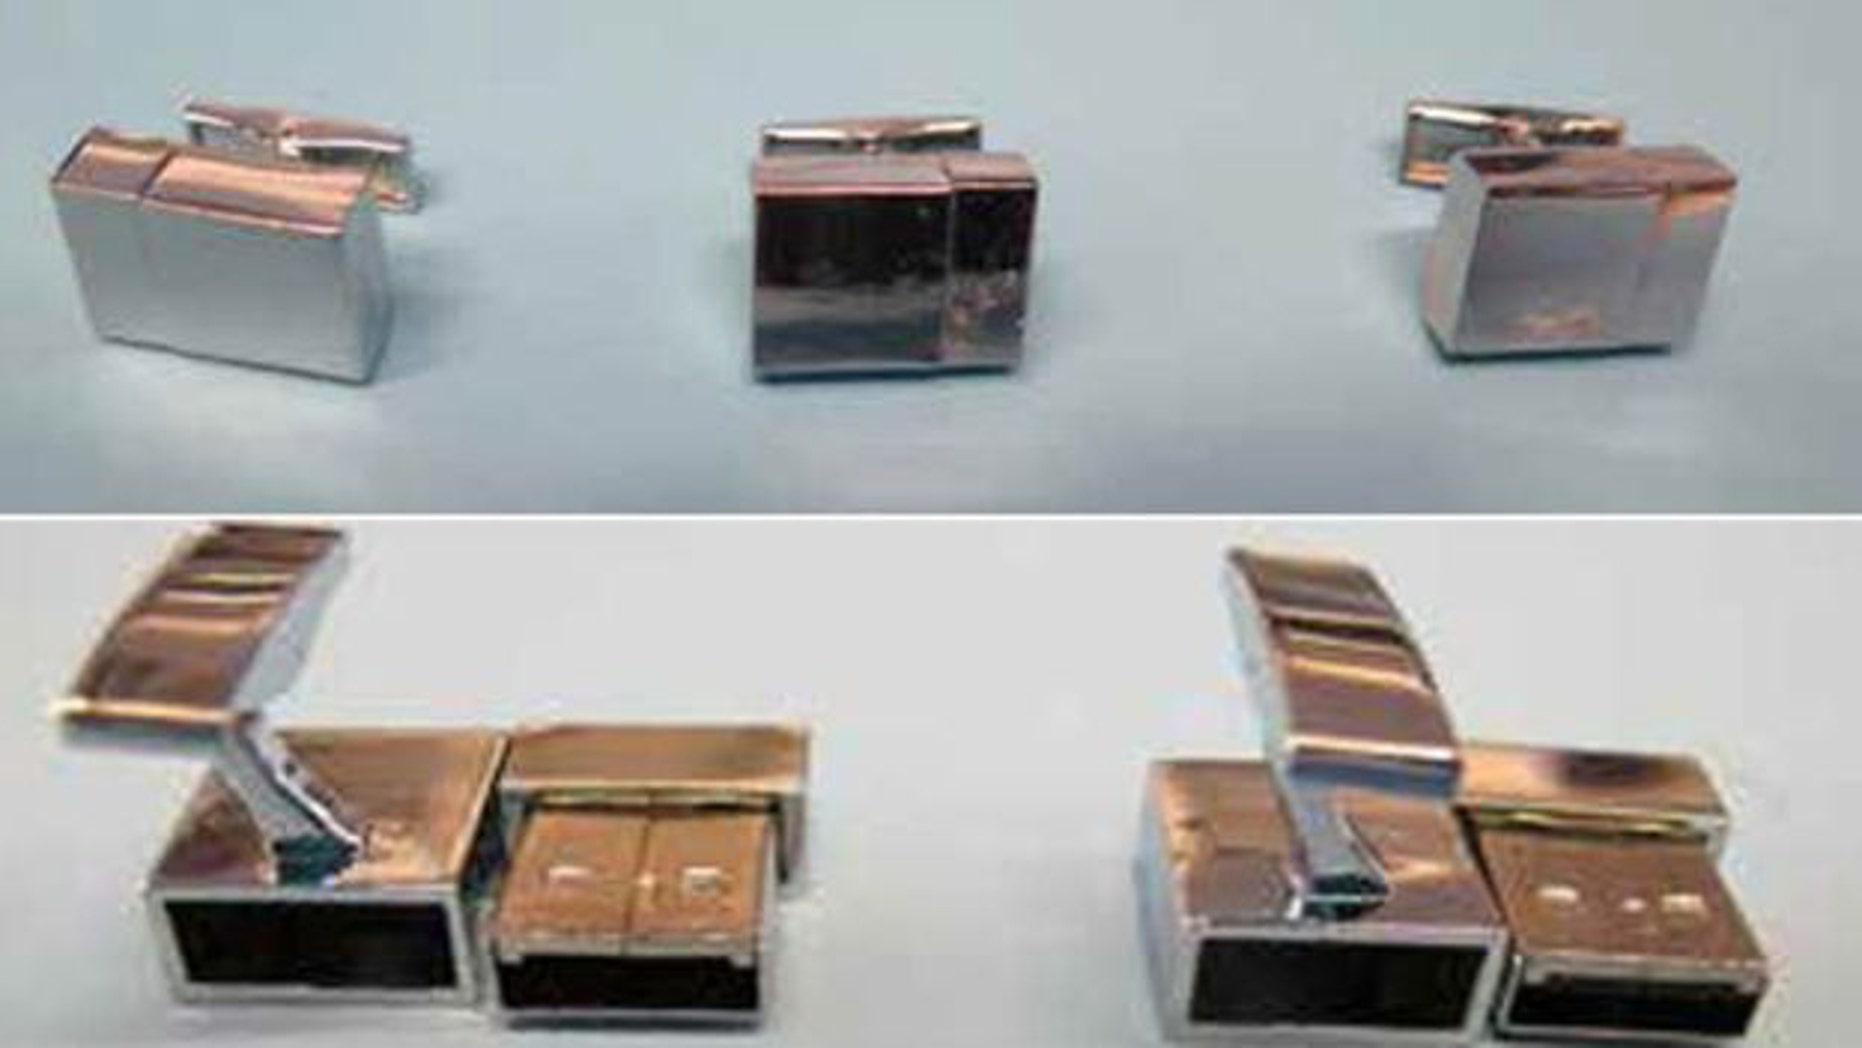 Some of the 60 USB cufflinks seized by police.